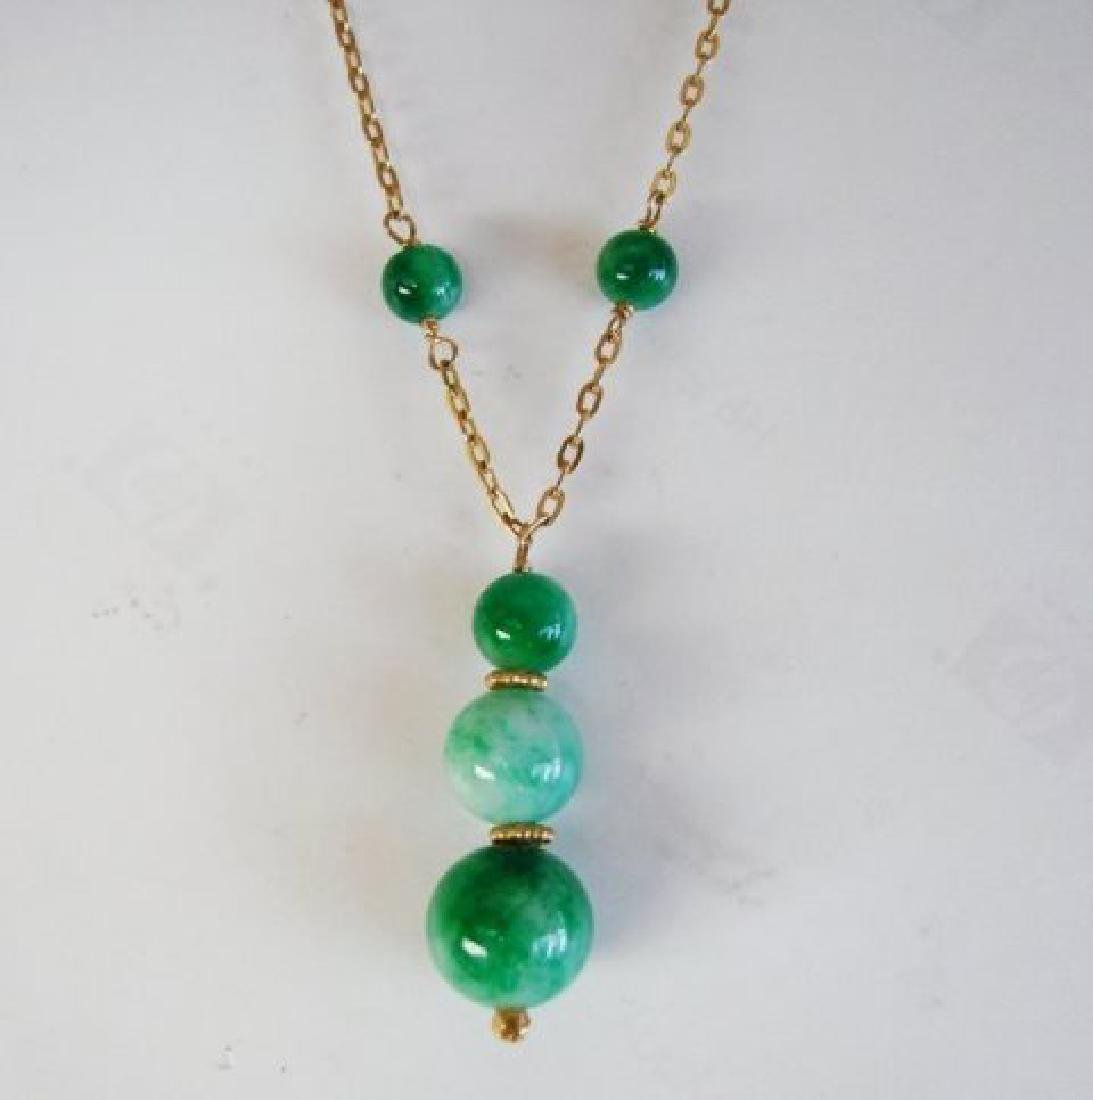 Natural Jadeite Jade Necklace 18k Y/g Filled